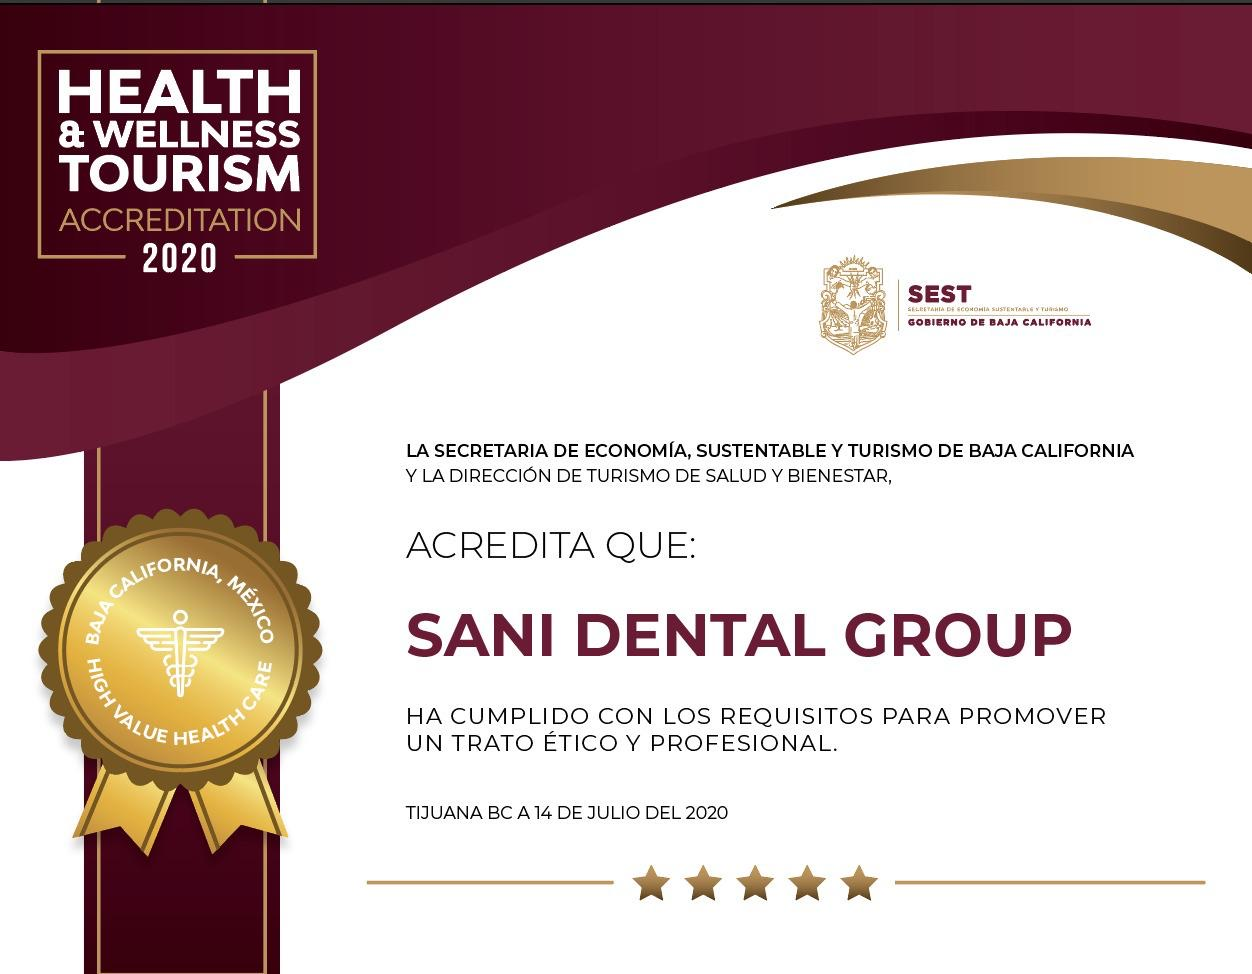 sani-dental-group